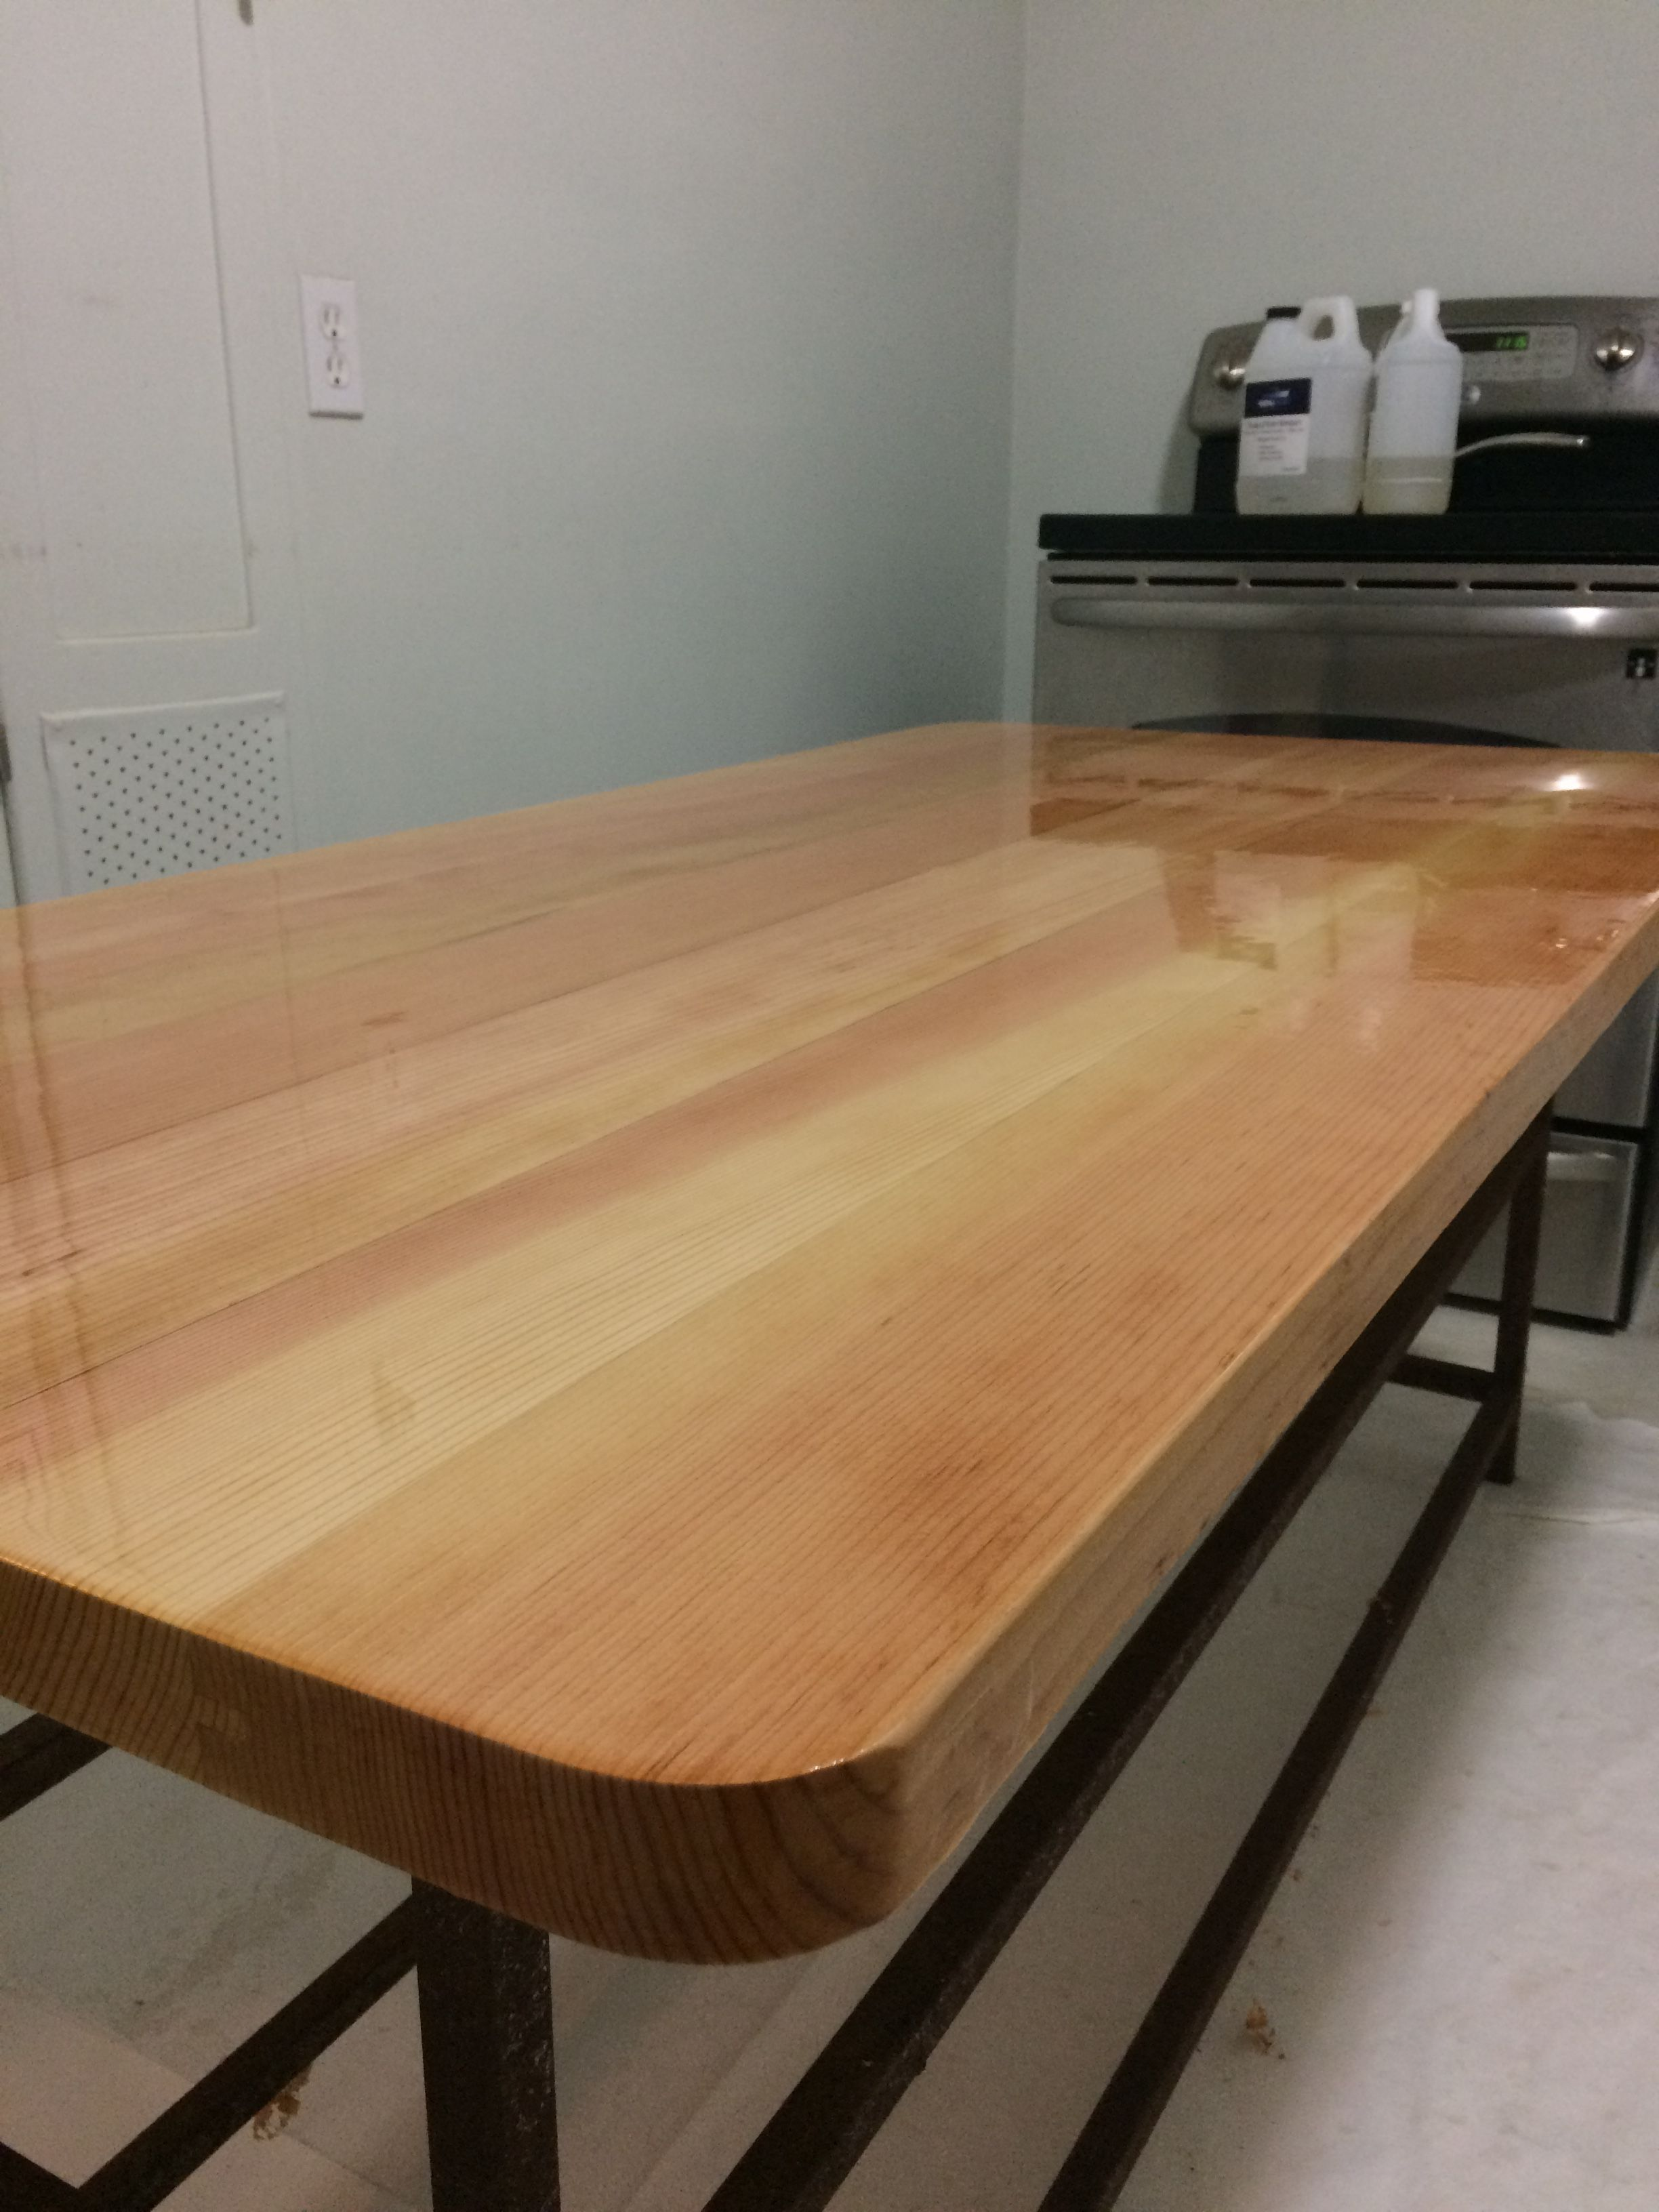 Epoxy Resin On A Douglas Fir Table Top Wood Projects